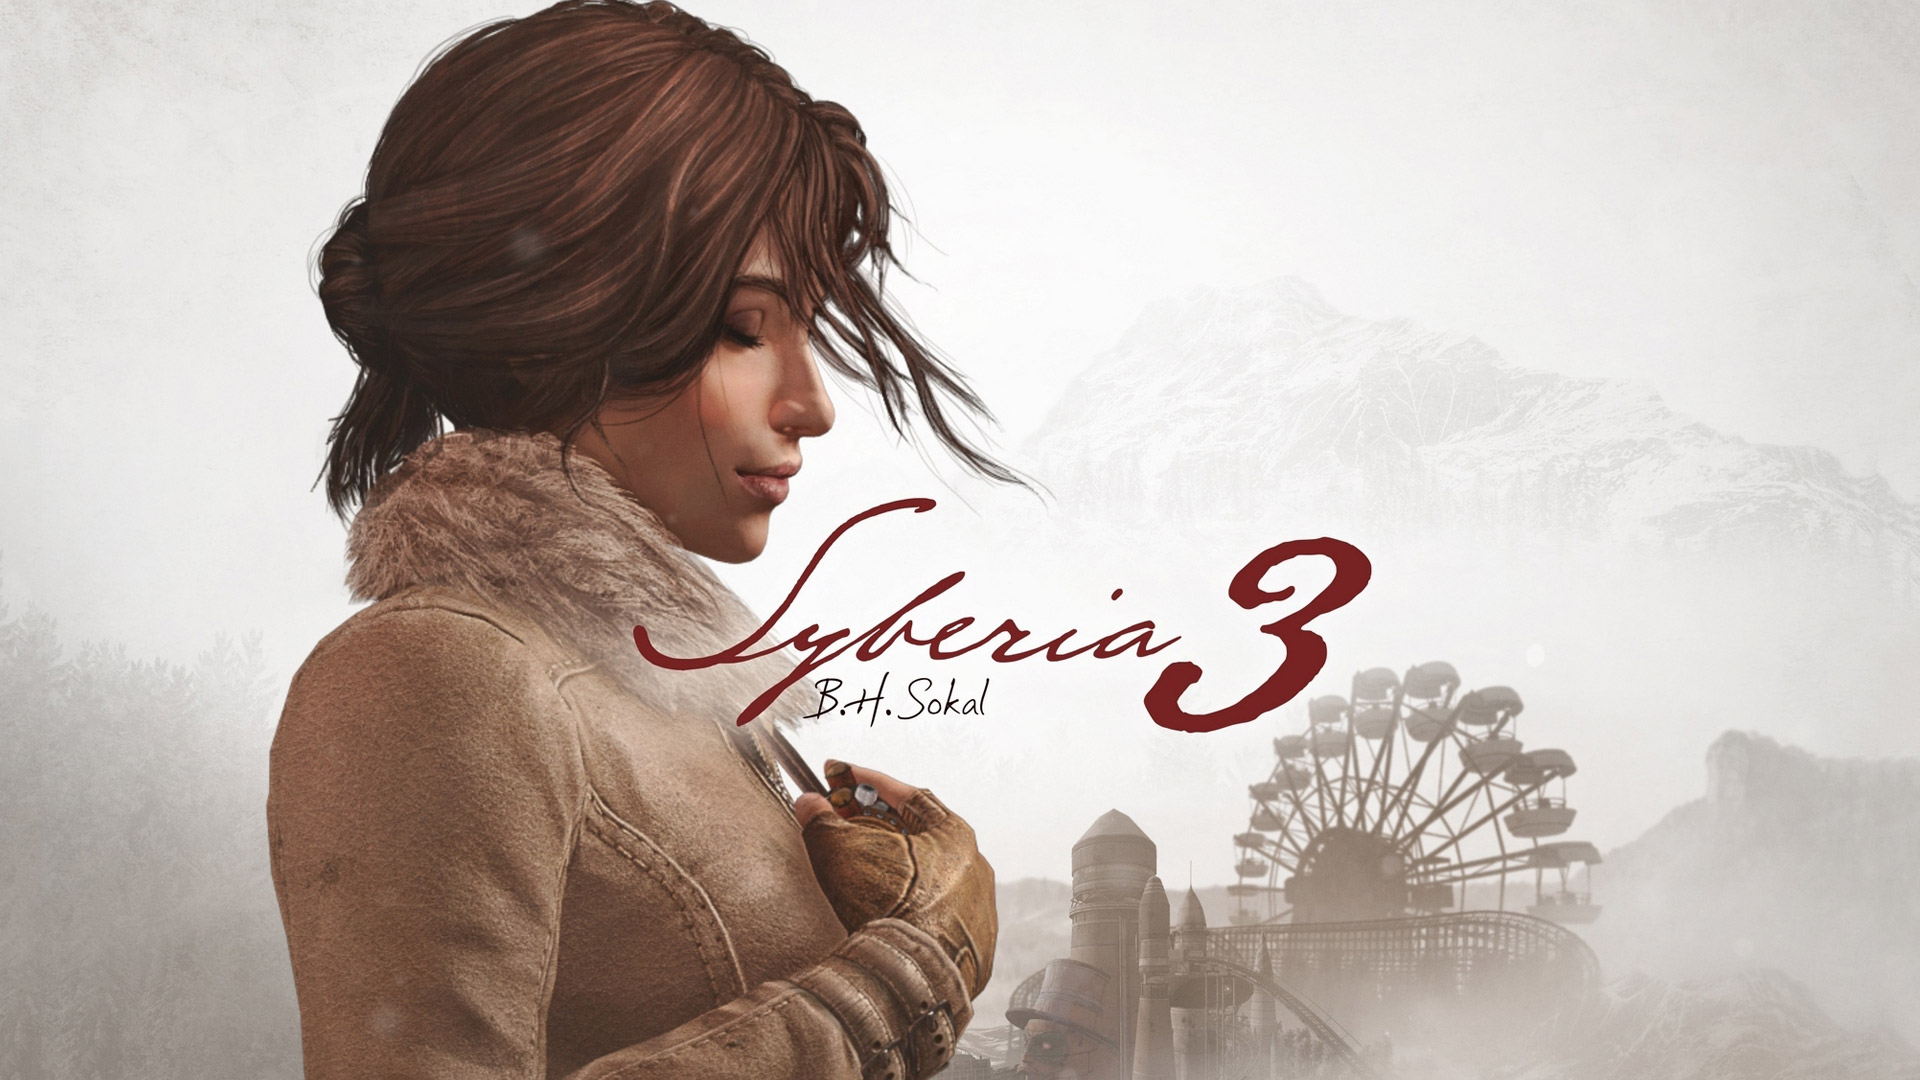 Free Syberia 3 Wallpaper in 1920x1080